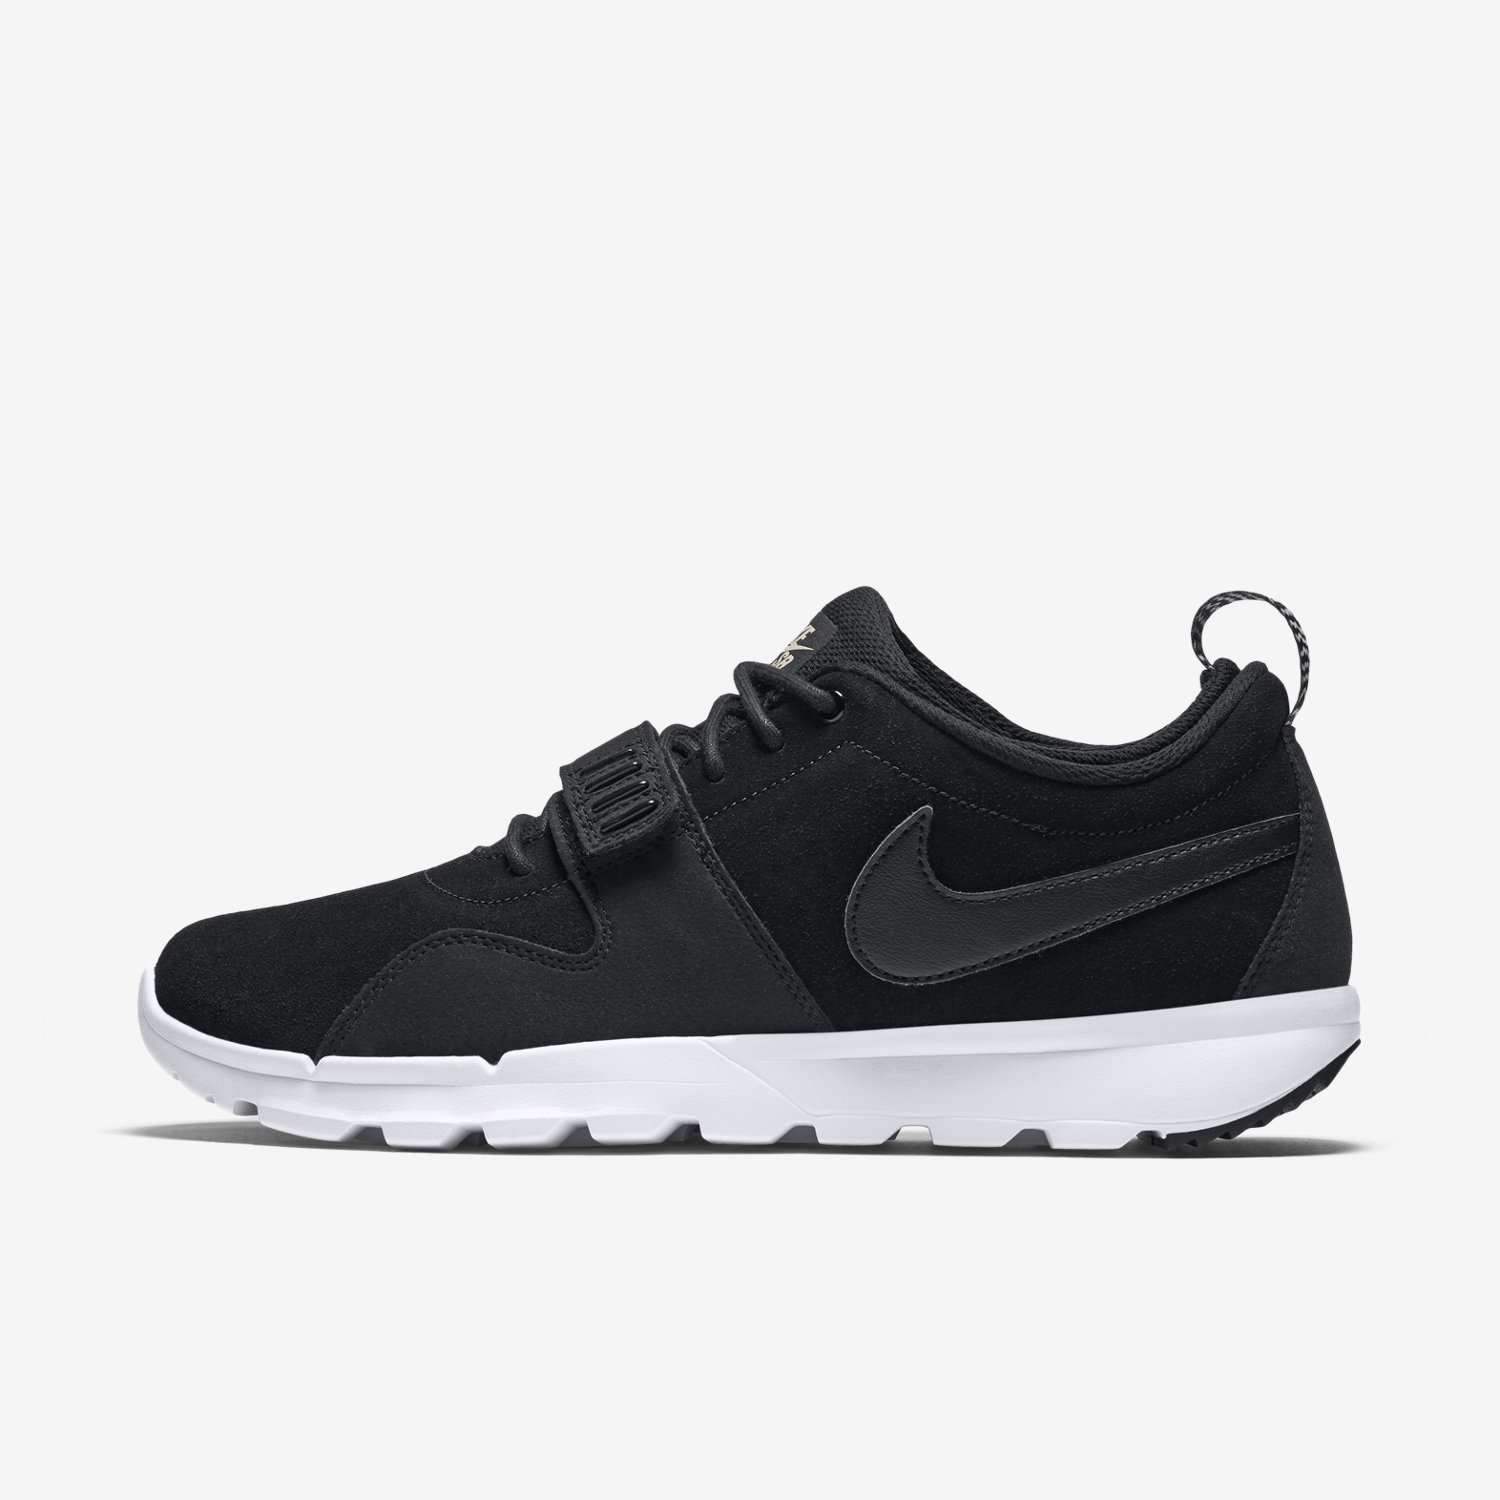 nike air max 24 noir 7 - Chaussure Nike SB Trainerendor Leather pour Homme. Nike.com CA